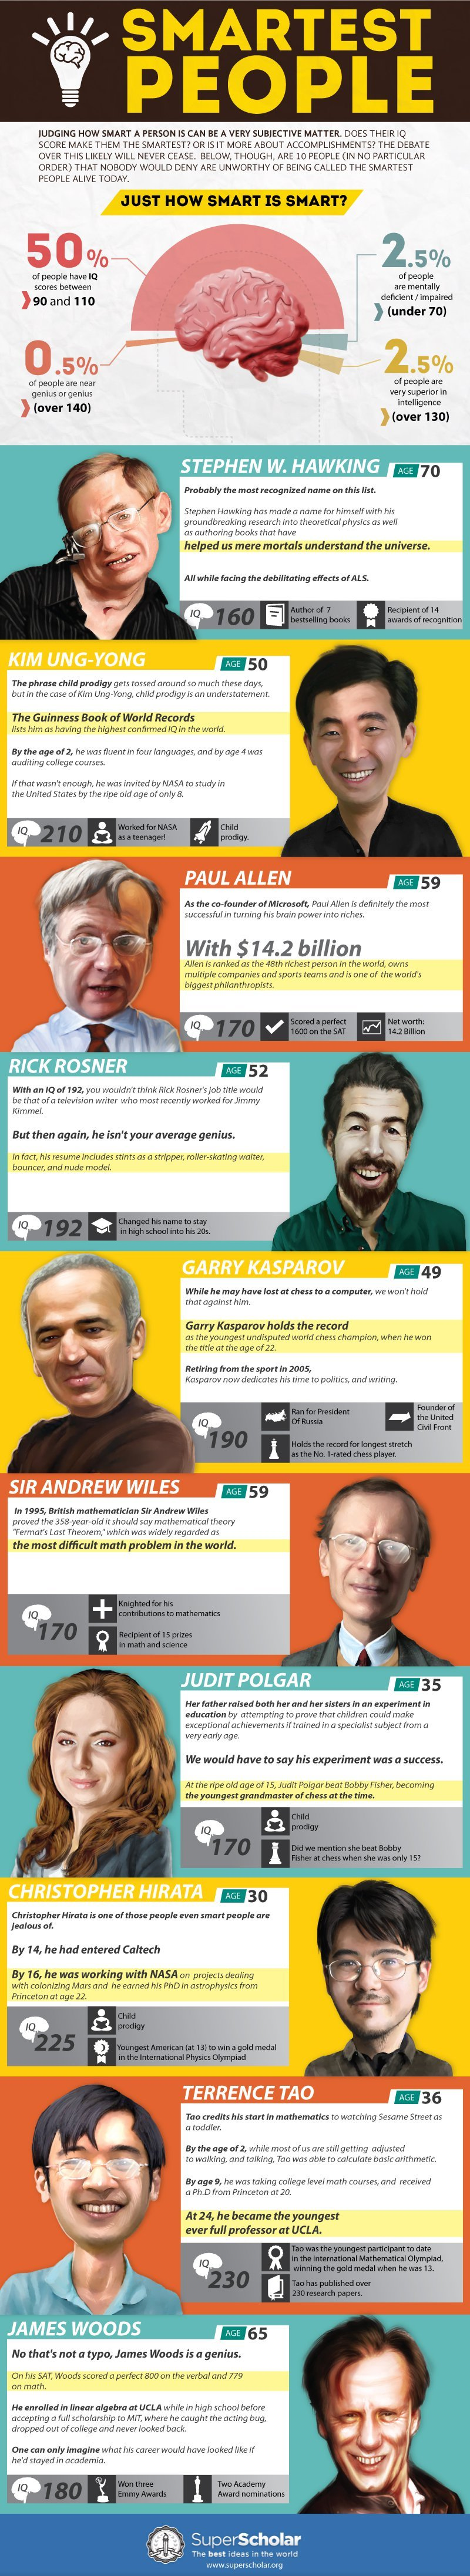 This Controversial Infographic Lists The 10 Smartest People in The World